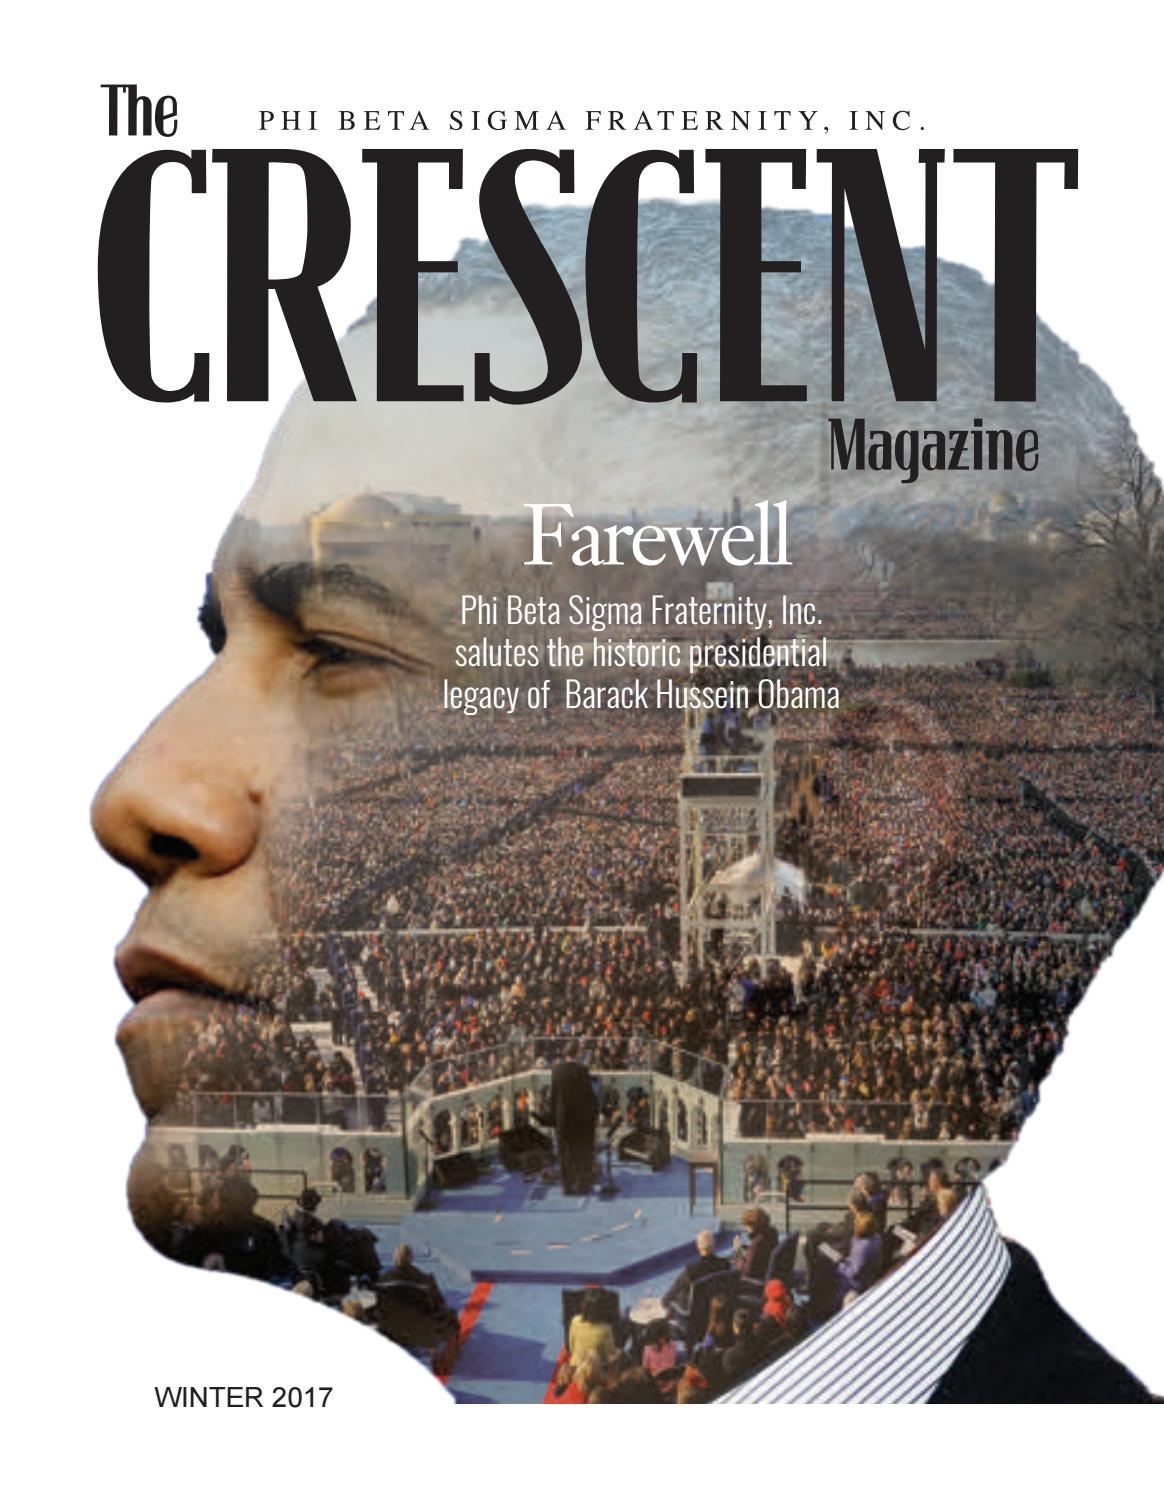 CRESCENT WINTER 2017 by Todd Le Bon - issuu